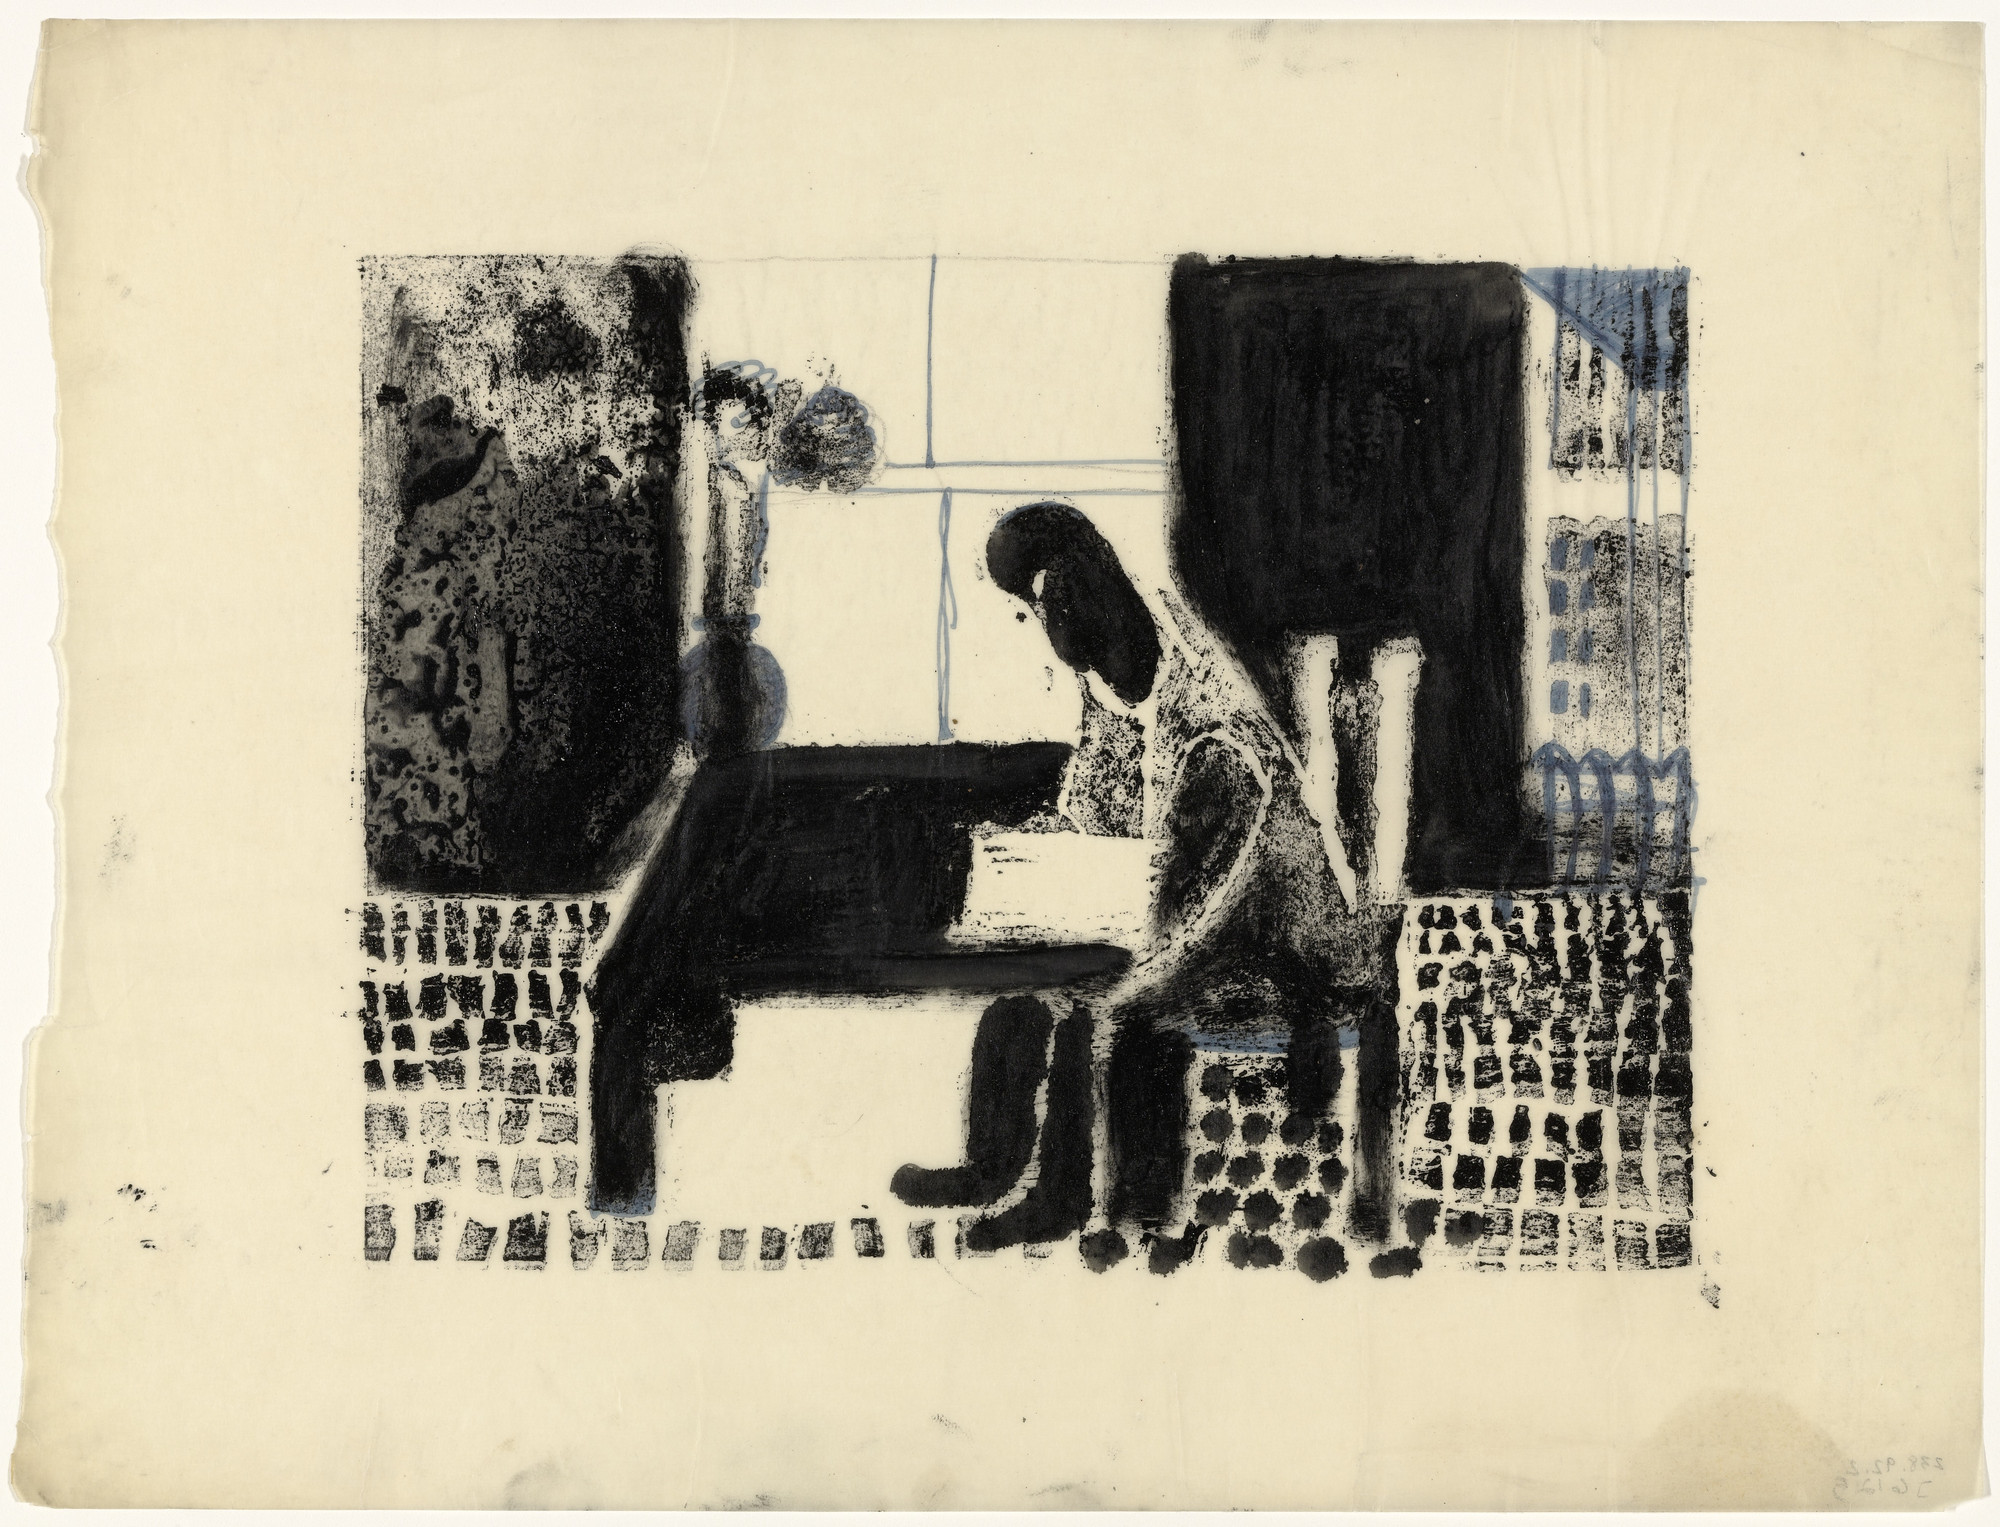 Louise Bourgeois. Man Reading. 1940-1944